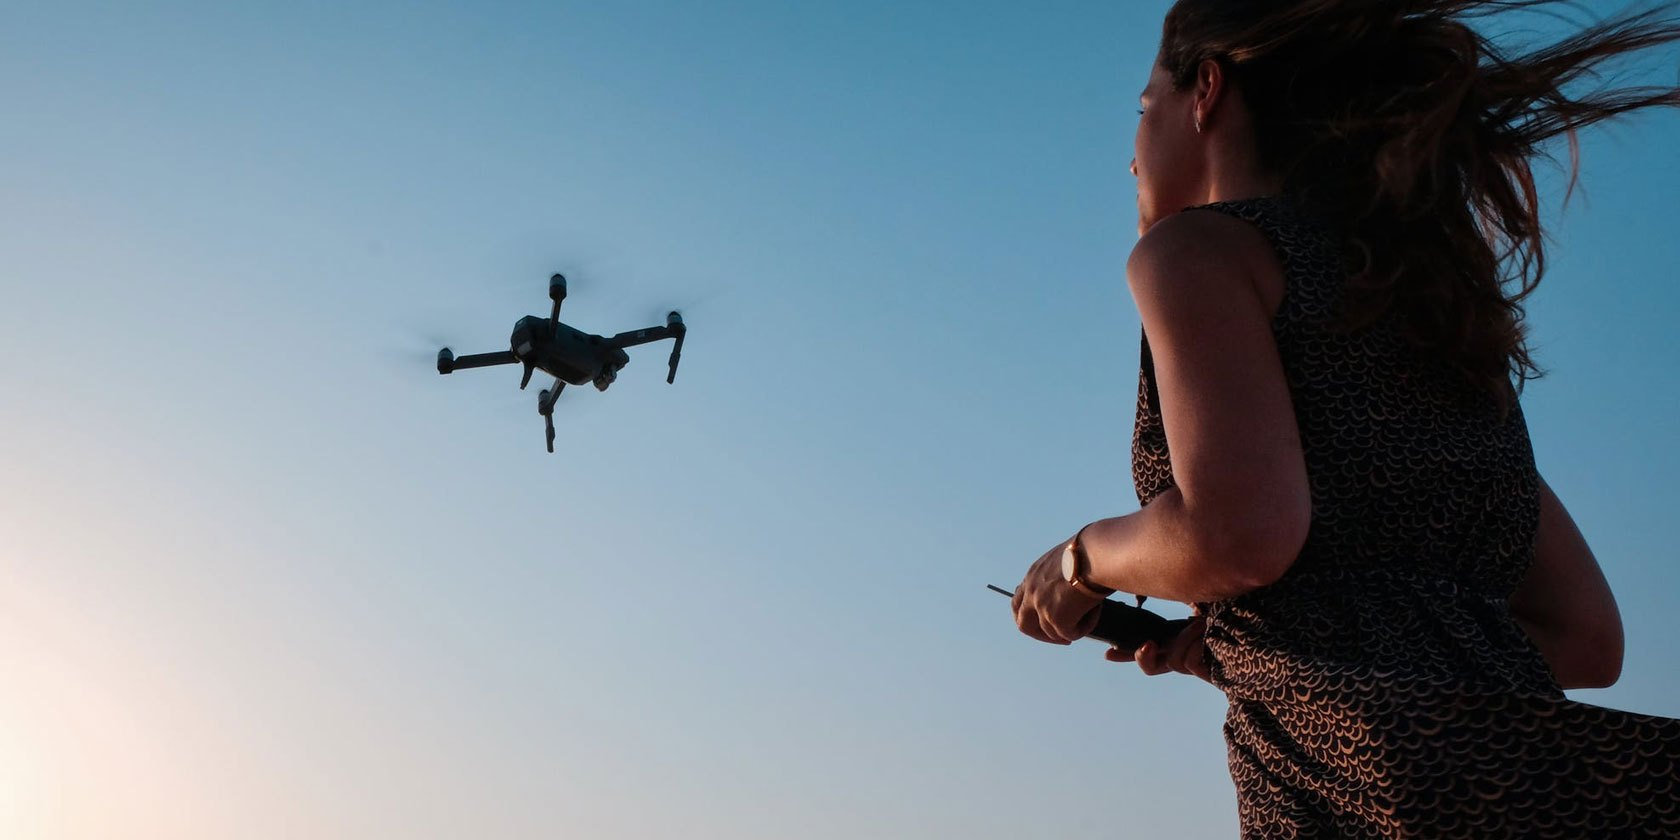 The 10 Best Drones for Beginners